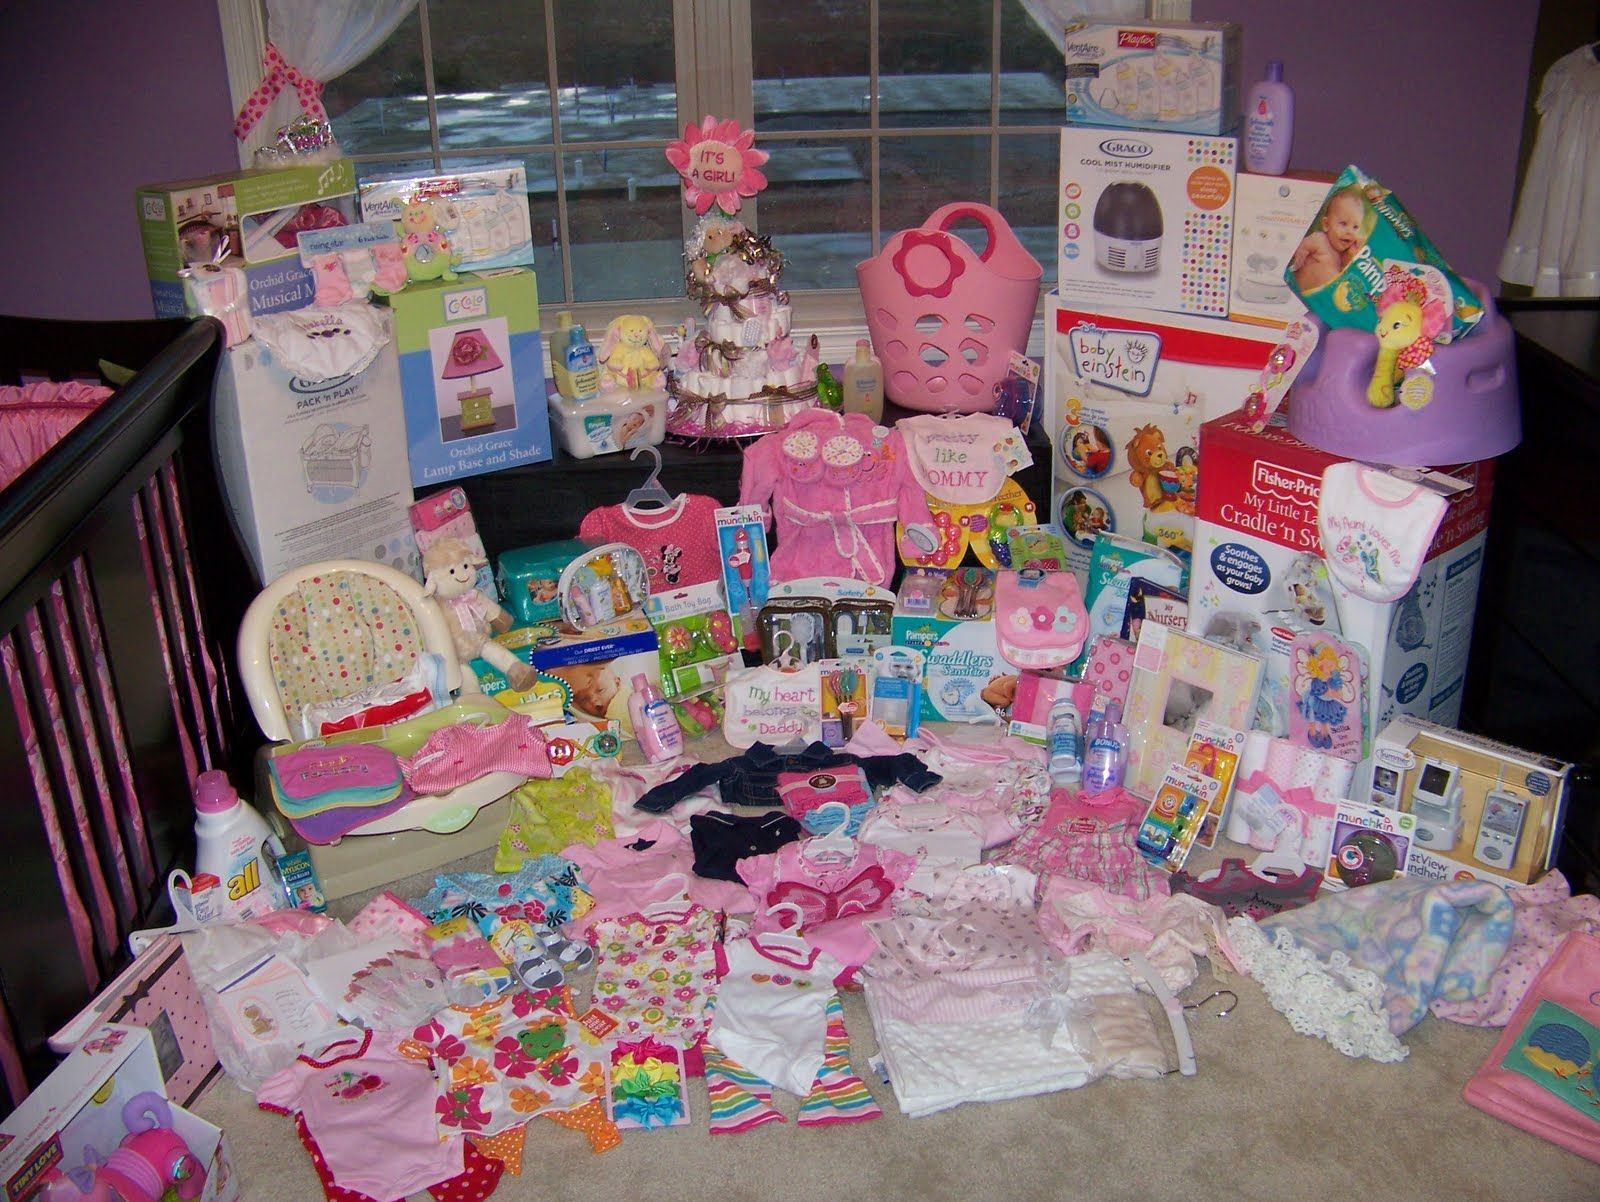 All the baby shower gifts baby shower pinterest all the baby shower gifts negle